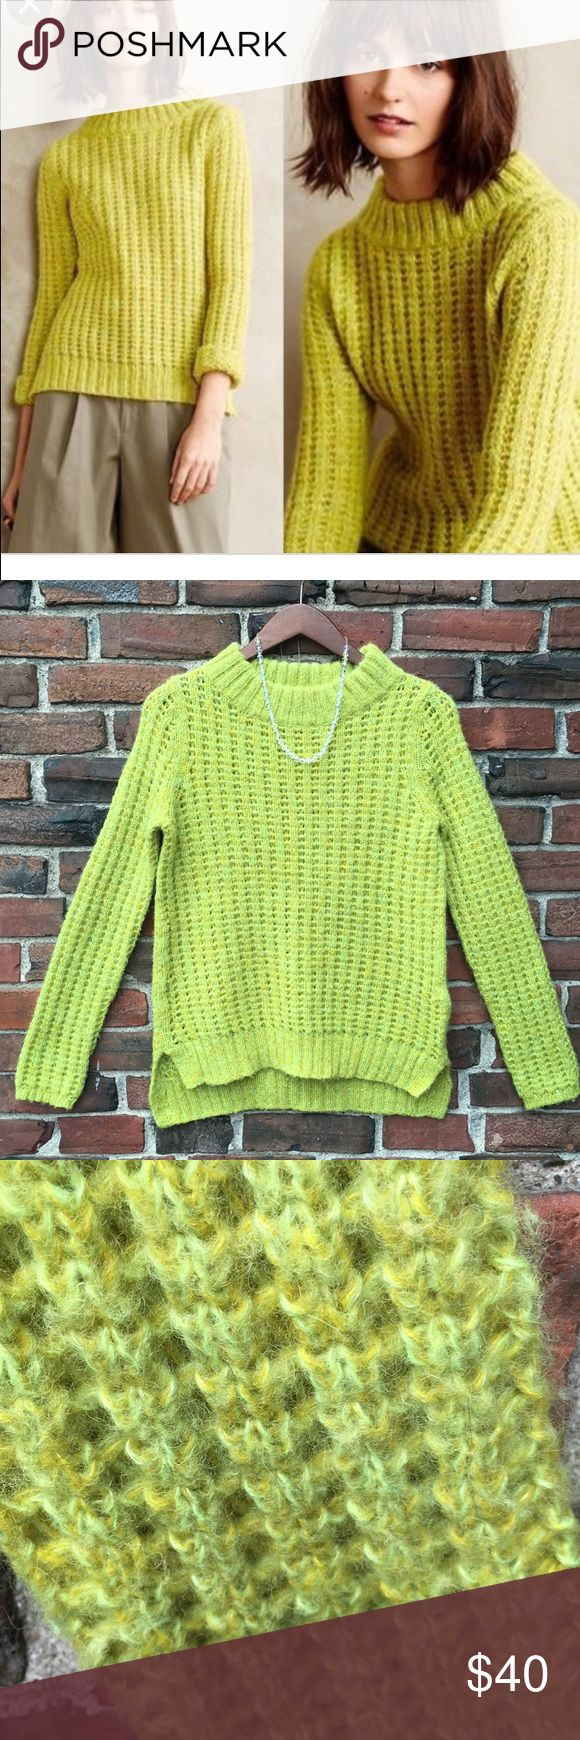 "ANTHRO Field Flower open Weave Chunky Sweater Kill those winter blues with this cozy, lemon-lime wool-blend sweater! Heathered green and yellow weave. Wide ribbed collar adds pizzazz. Split hem. 26"" long; 17"" flat armpit to armpit.Excellent preowned condition. Anthropologie Sweaters"